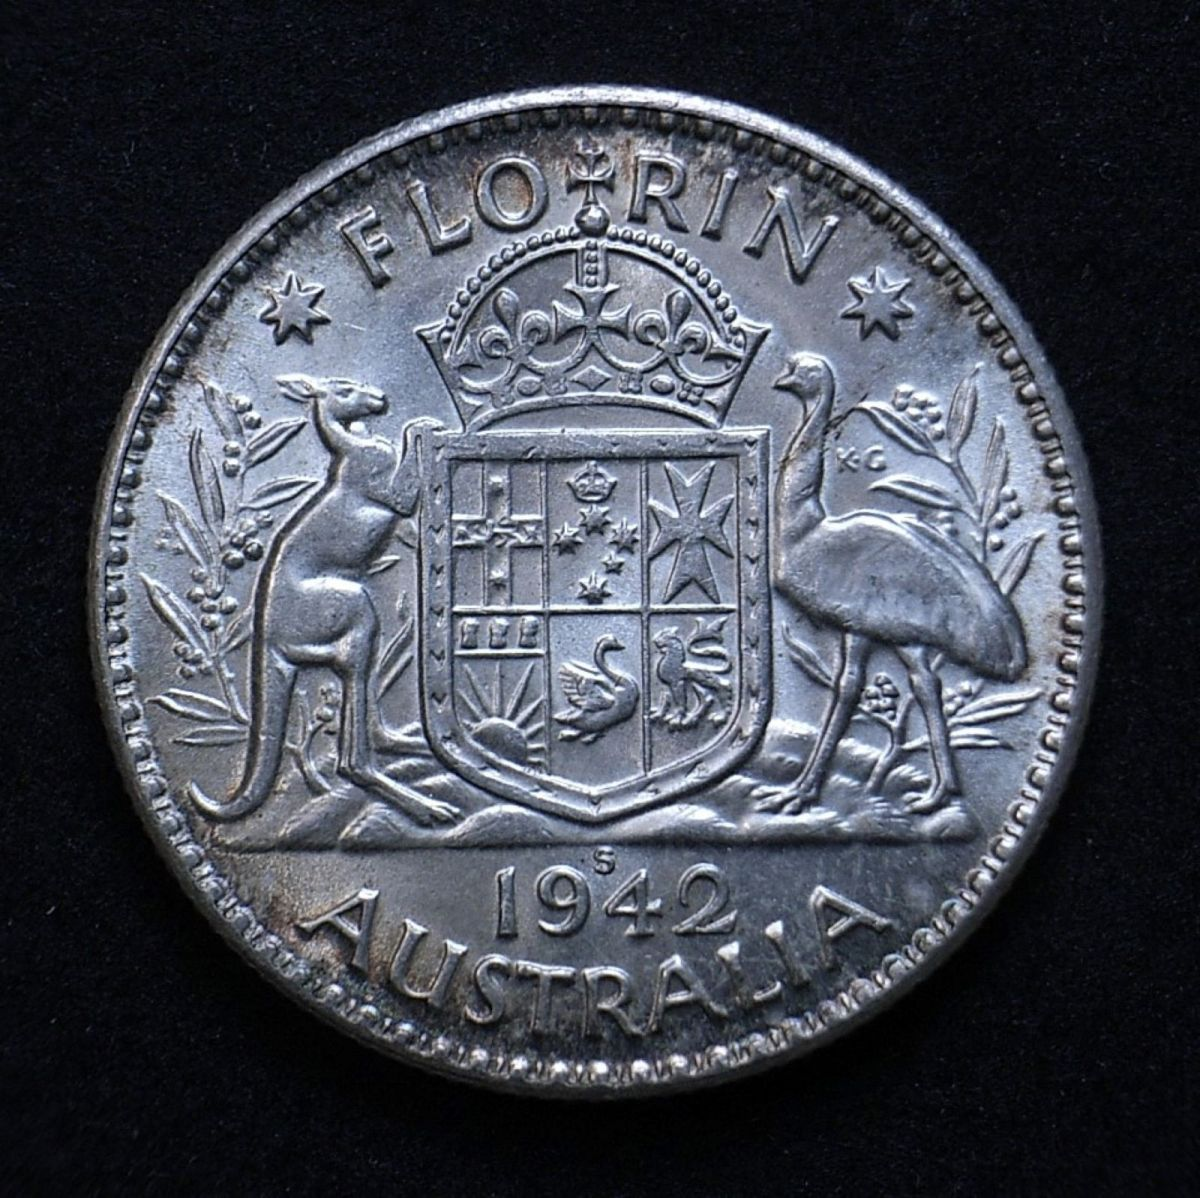 Close up Aussie florin 1942s highlighting the coin's detail